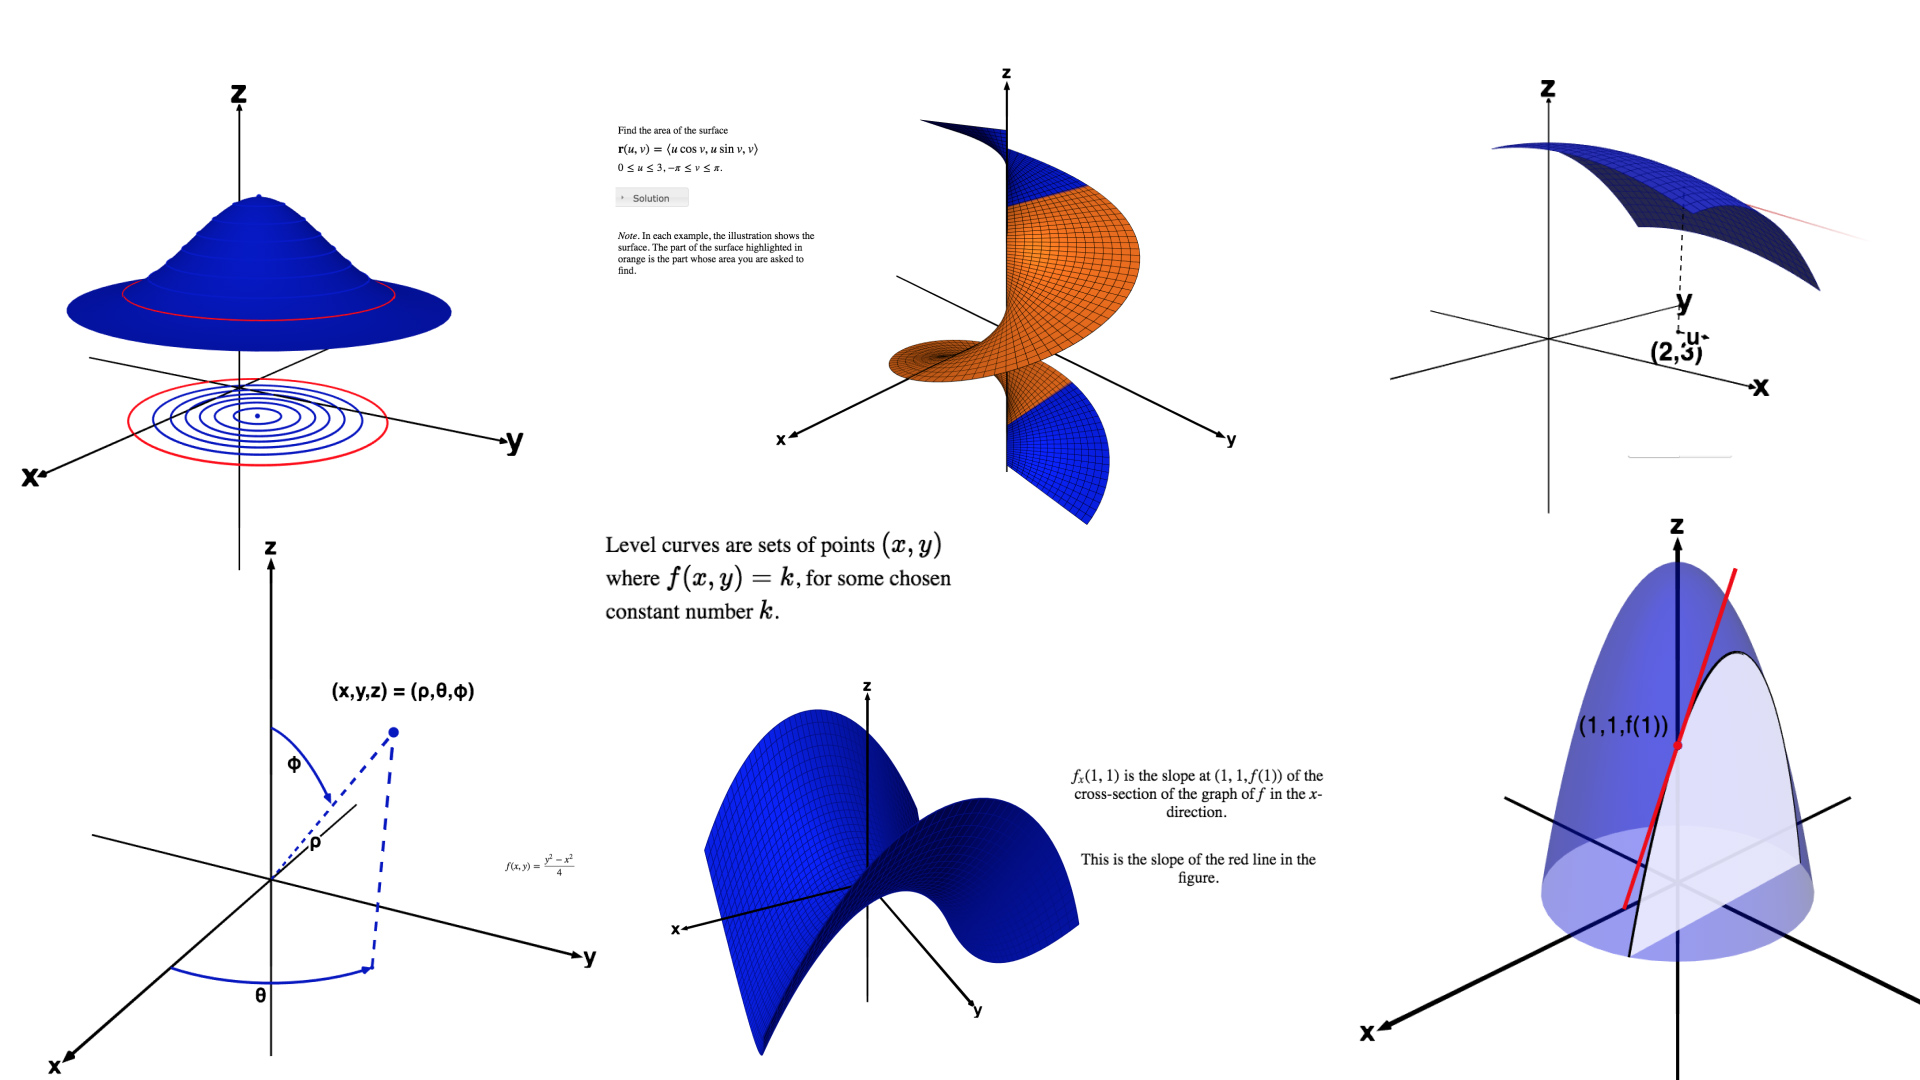 Math visualizations created by David Nichols, Ph.D. student, in the Department of Mathematics.